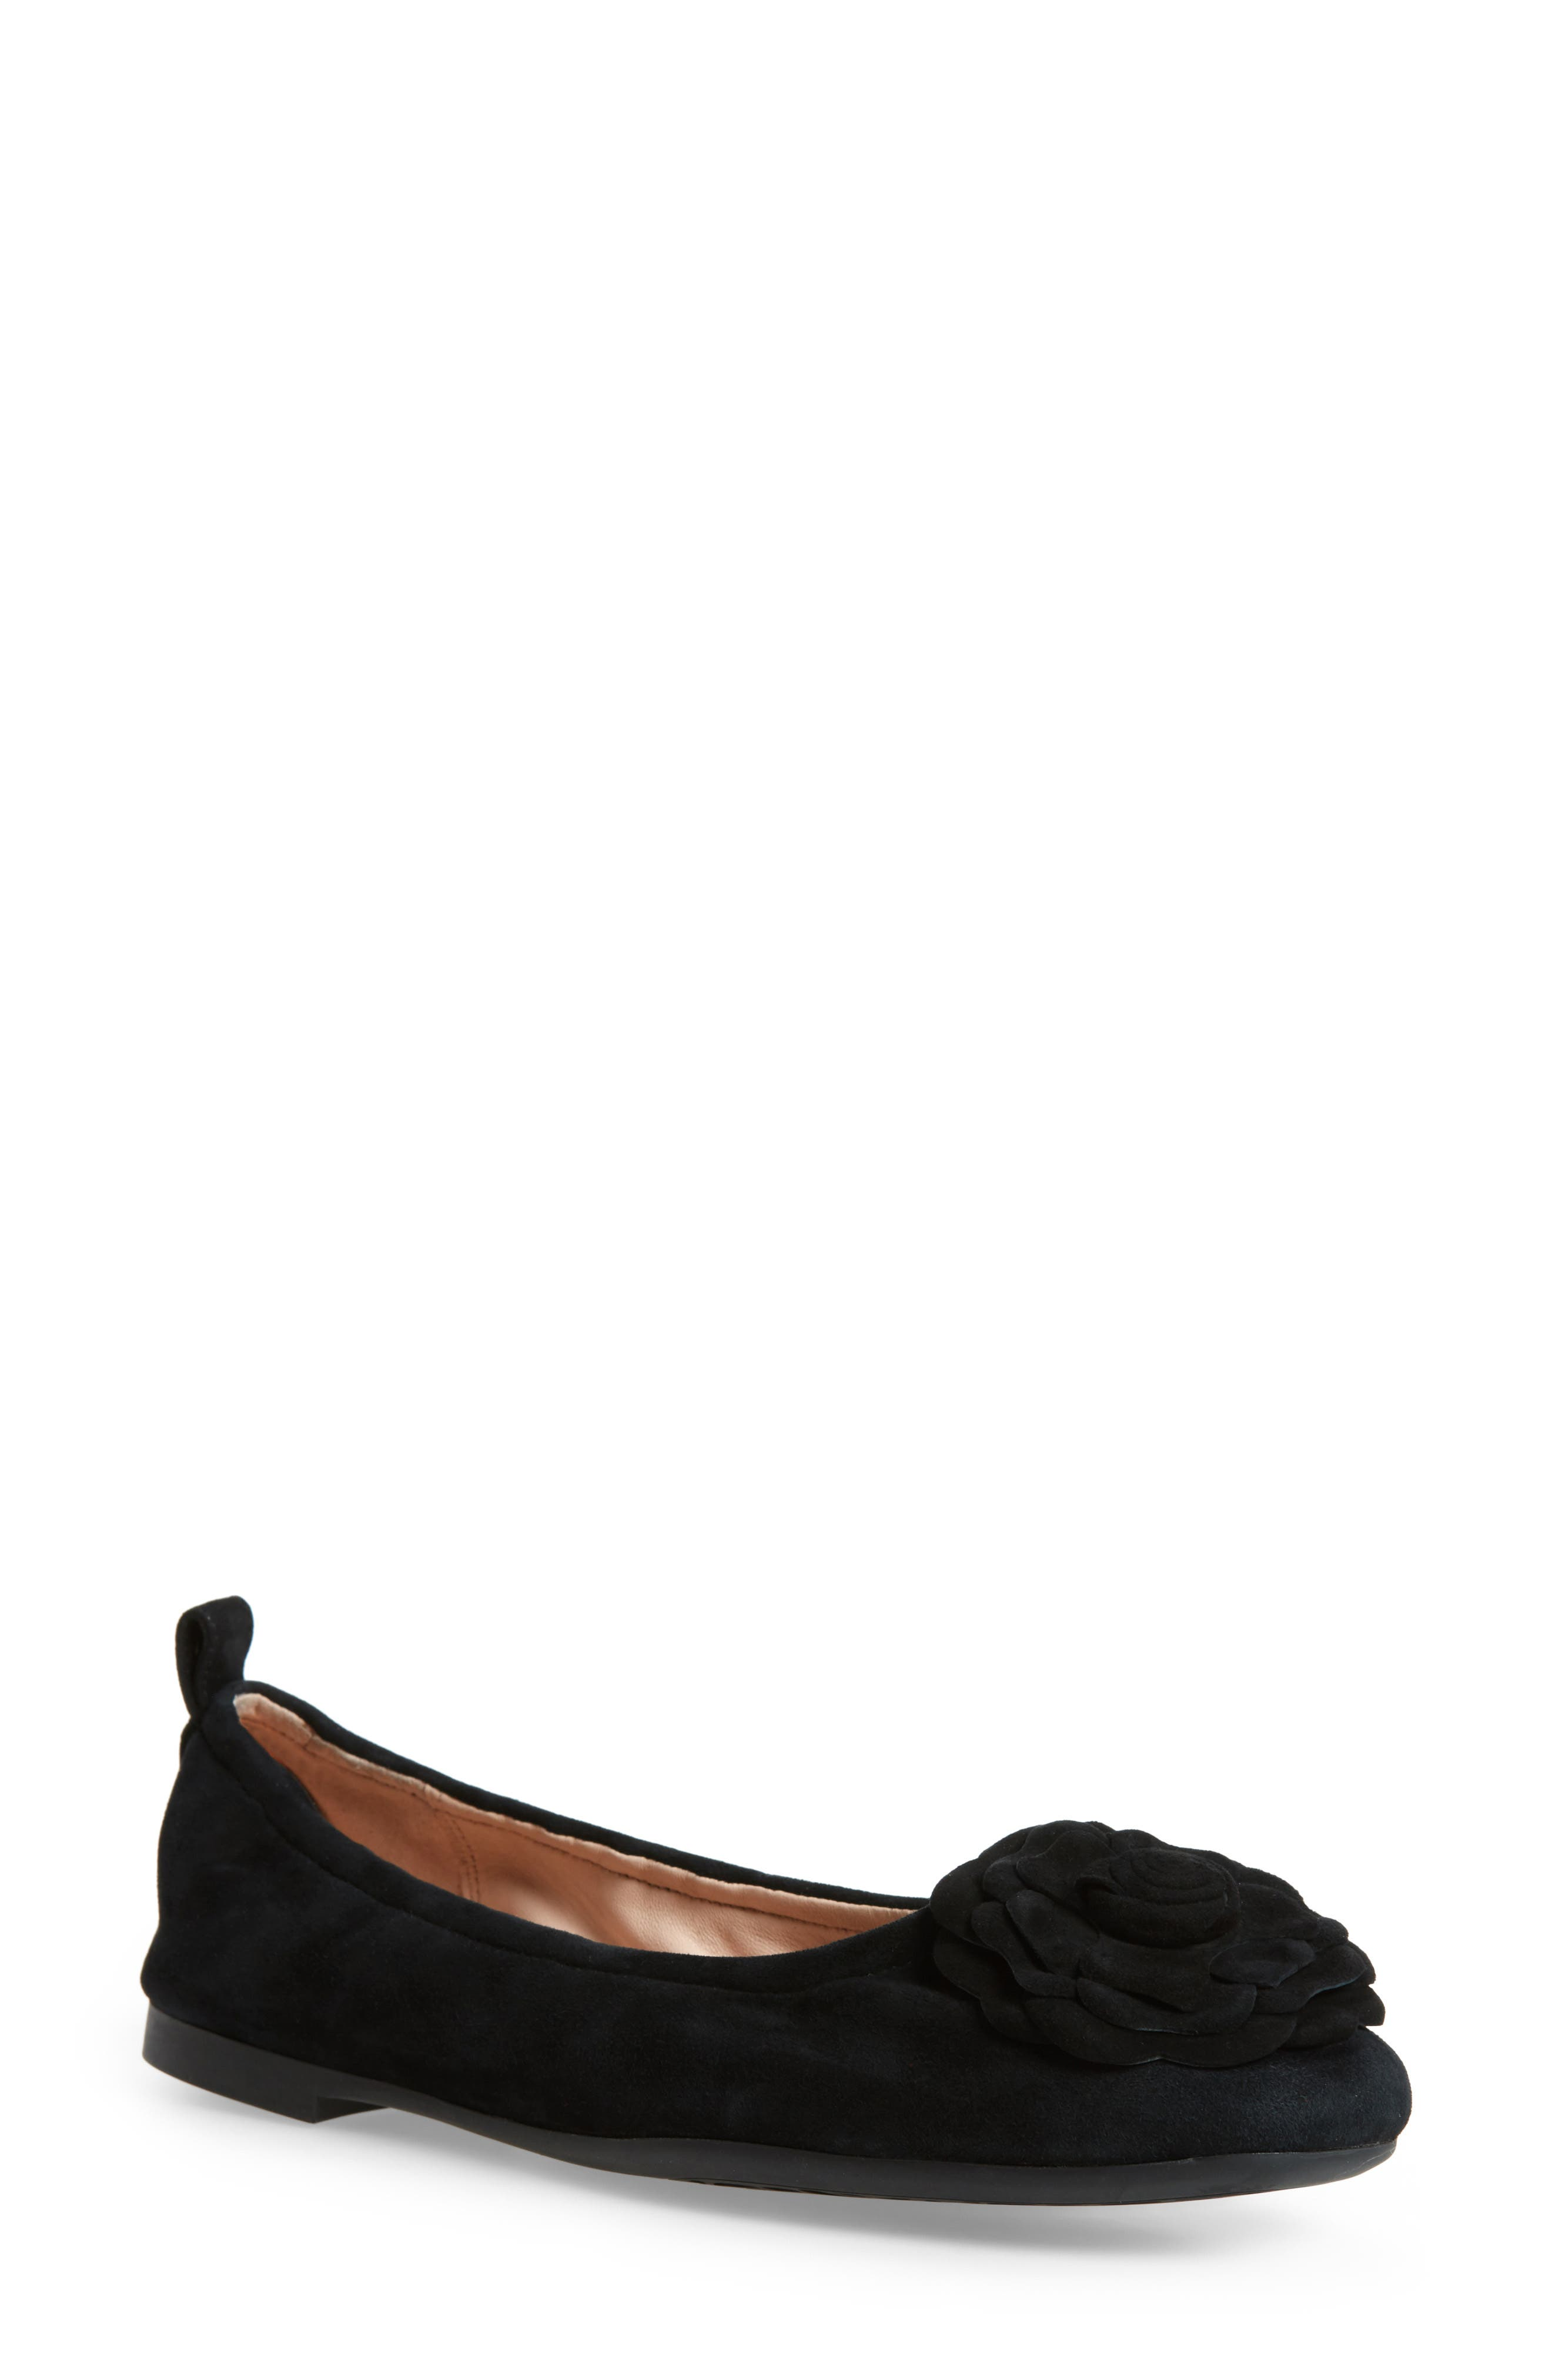 TARYN ROSE, Rosalyn Ballet Flat, Main thumbnail 1, color, BLACK SUEDE